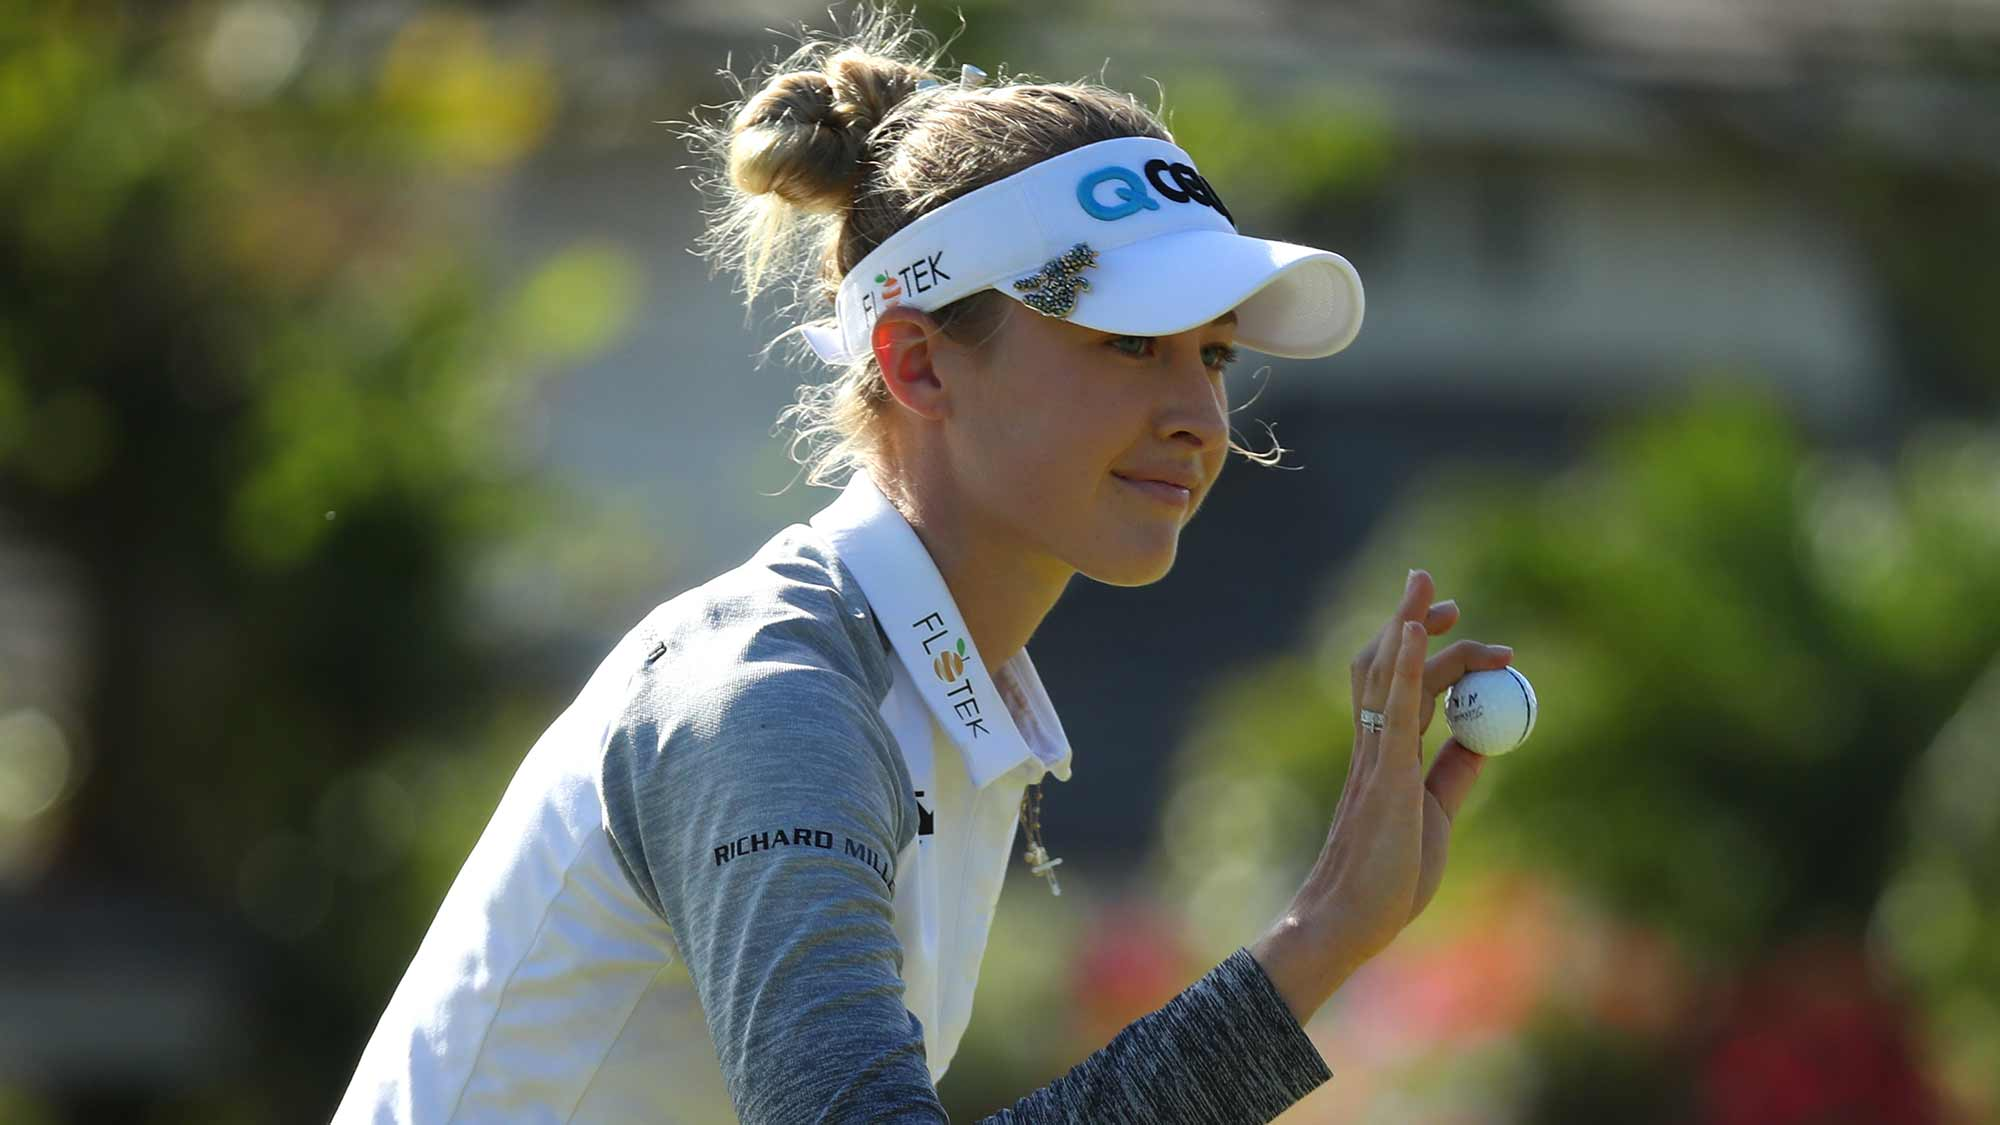 Nelly Korda waves to fans after a birdie on the 15th green during the first round of the Lotte Championship on April 18, 2019 in Kapolei, Hawaii